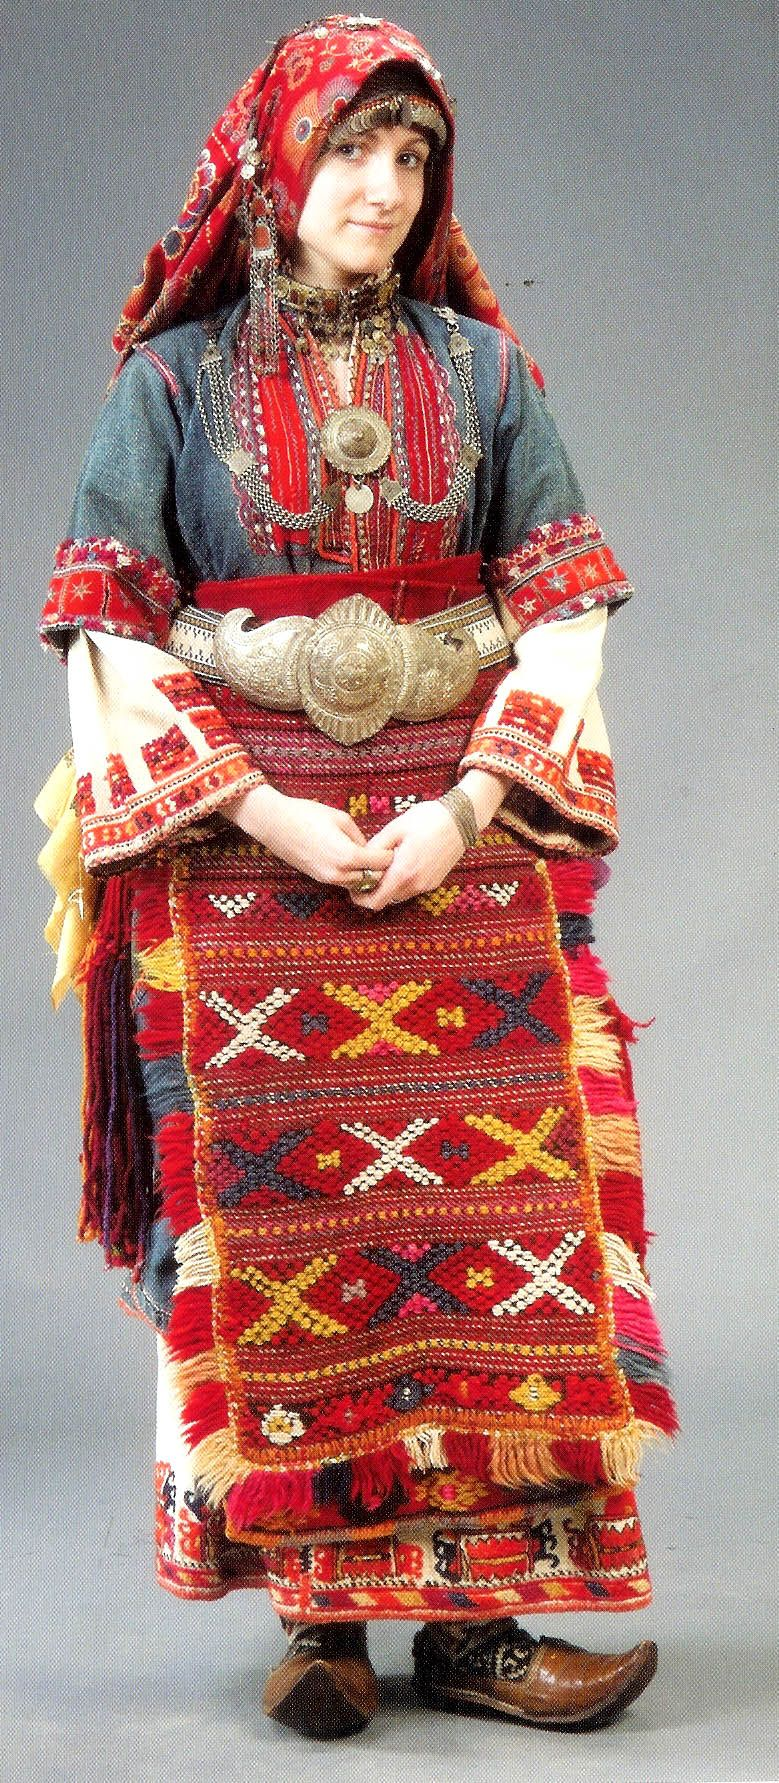 008 Traditional bridal/festive costume from the Pirin